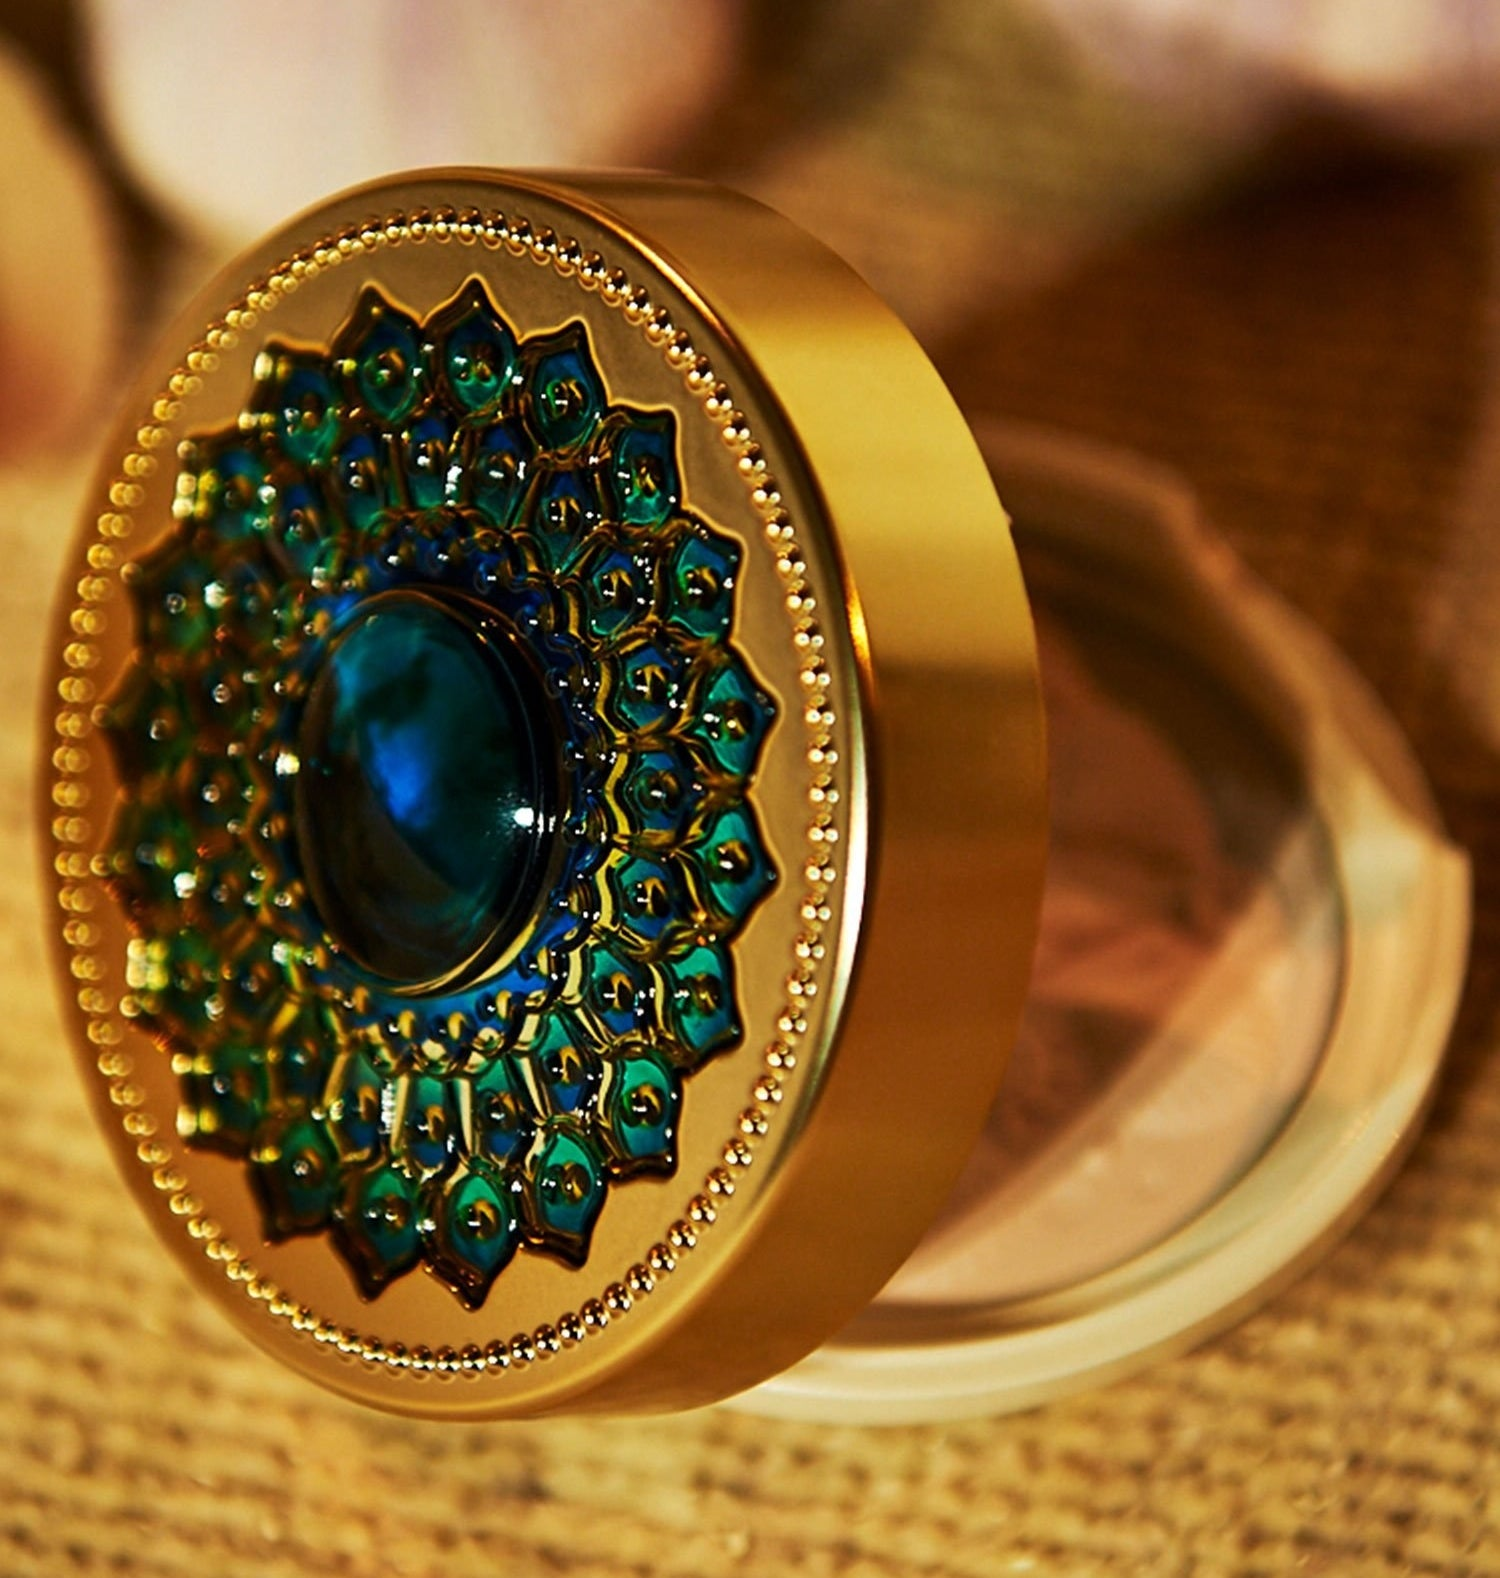 the gold case with a blue jewel in the center